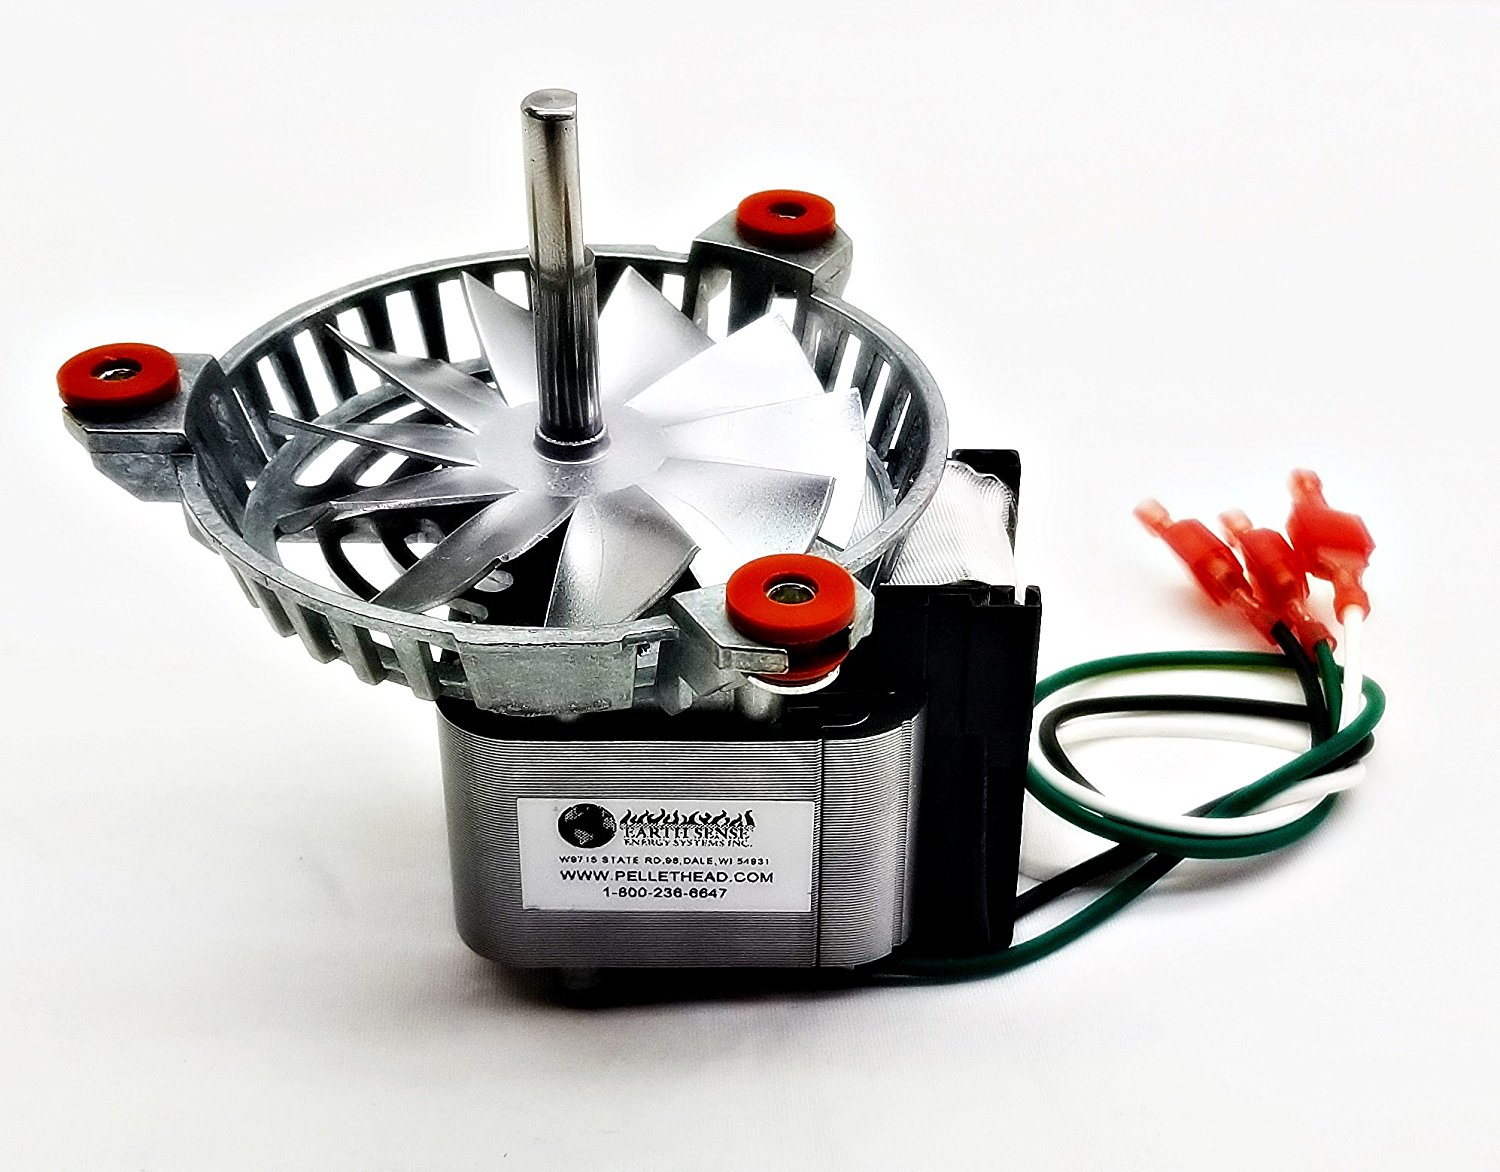 harman combustion exhaust fan motor for pellet stoves 3 21 08639